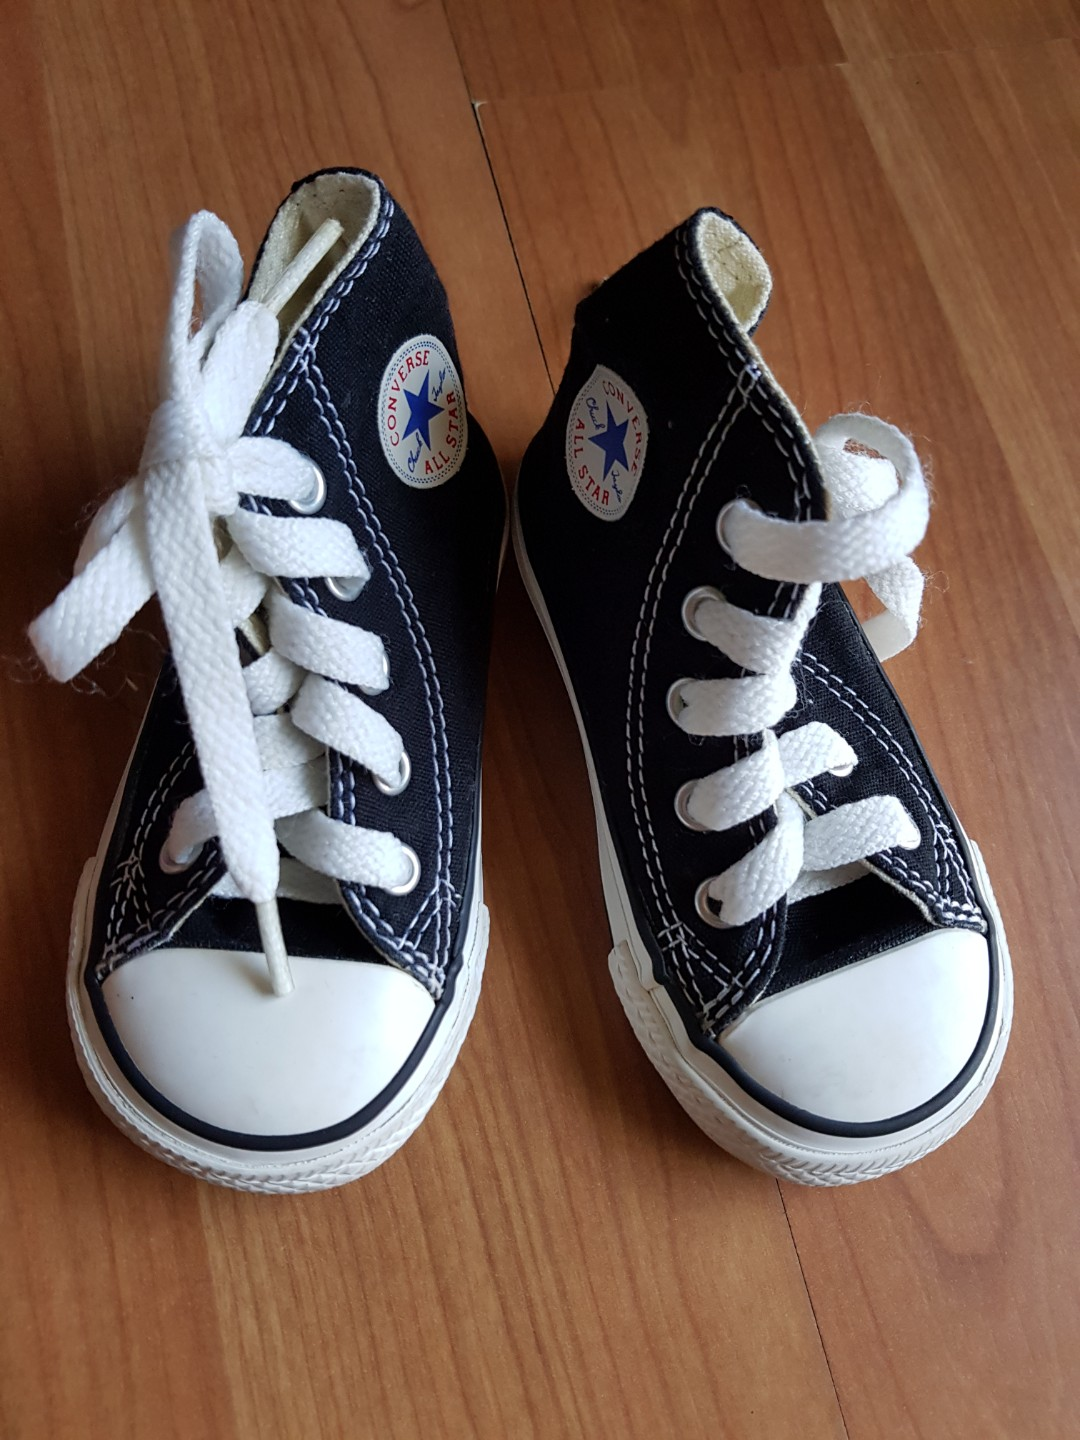 All shoes star for babies recommend to wear in spring in 2019